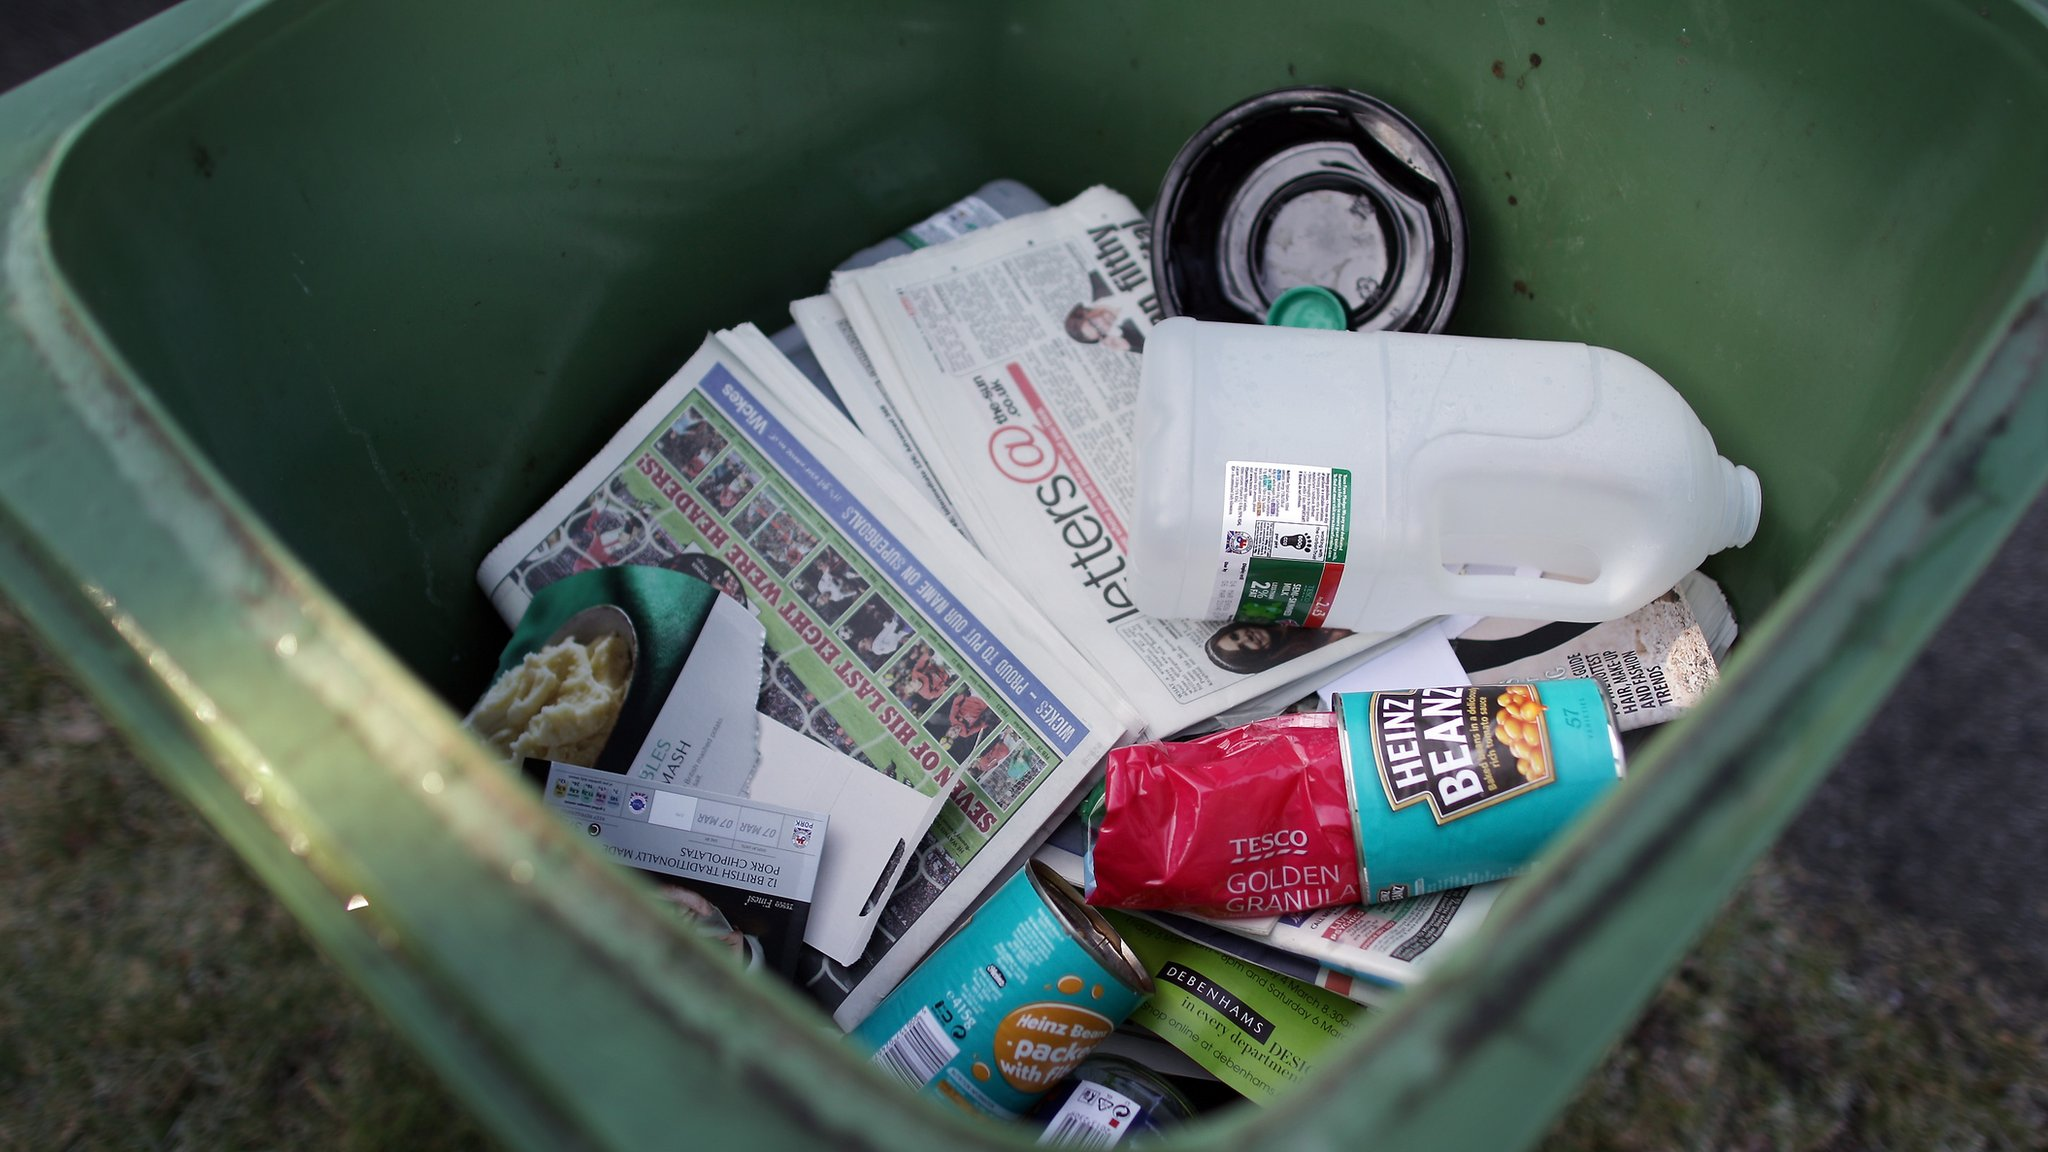 Rejected recyclable waste up 84% in England since 2011, data shows